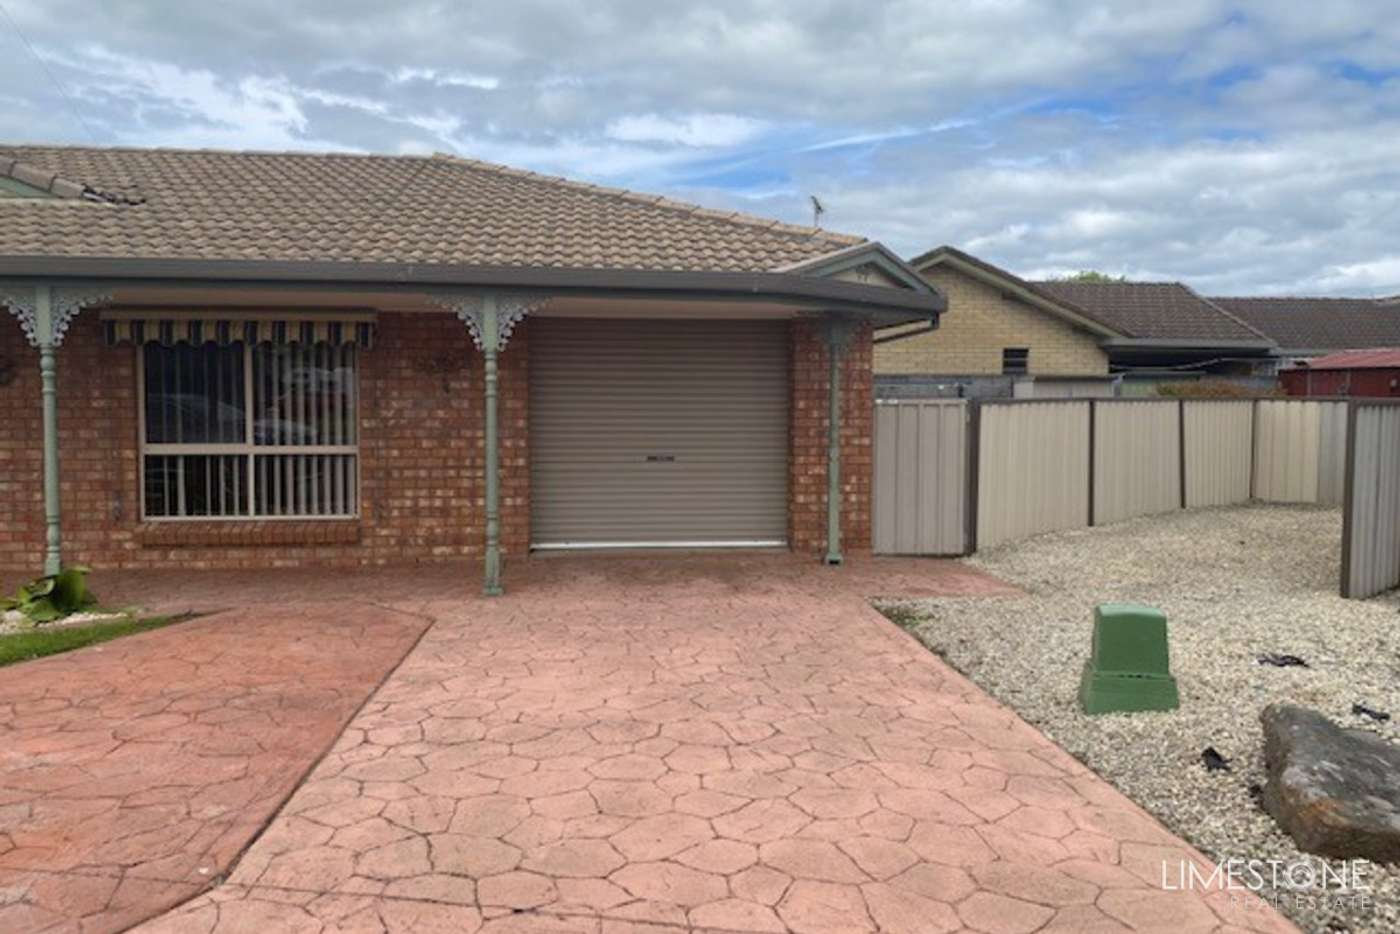 Main view of Homely house listing, 12 Winfield Court, Mount Gambier SA 5290